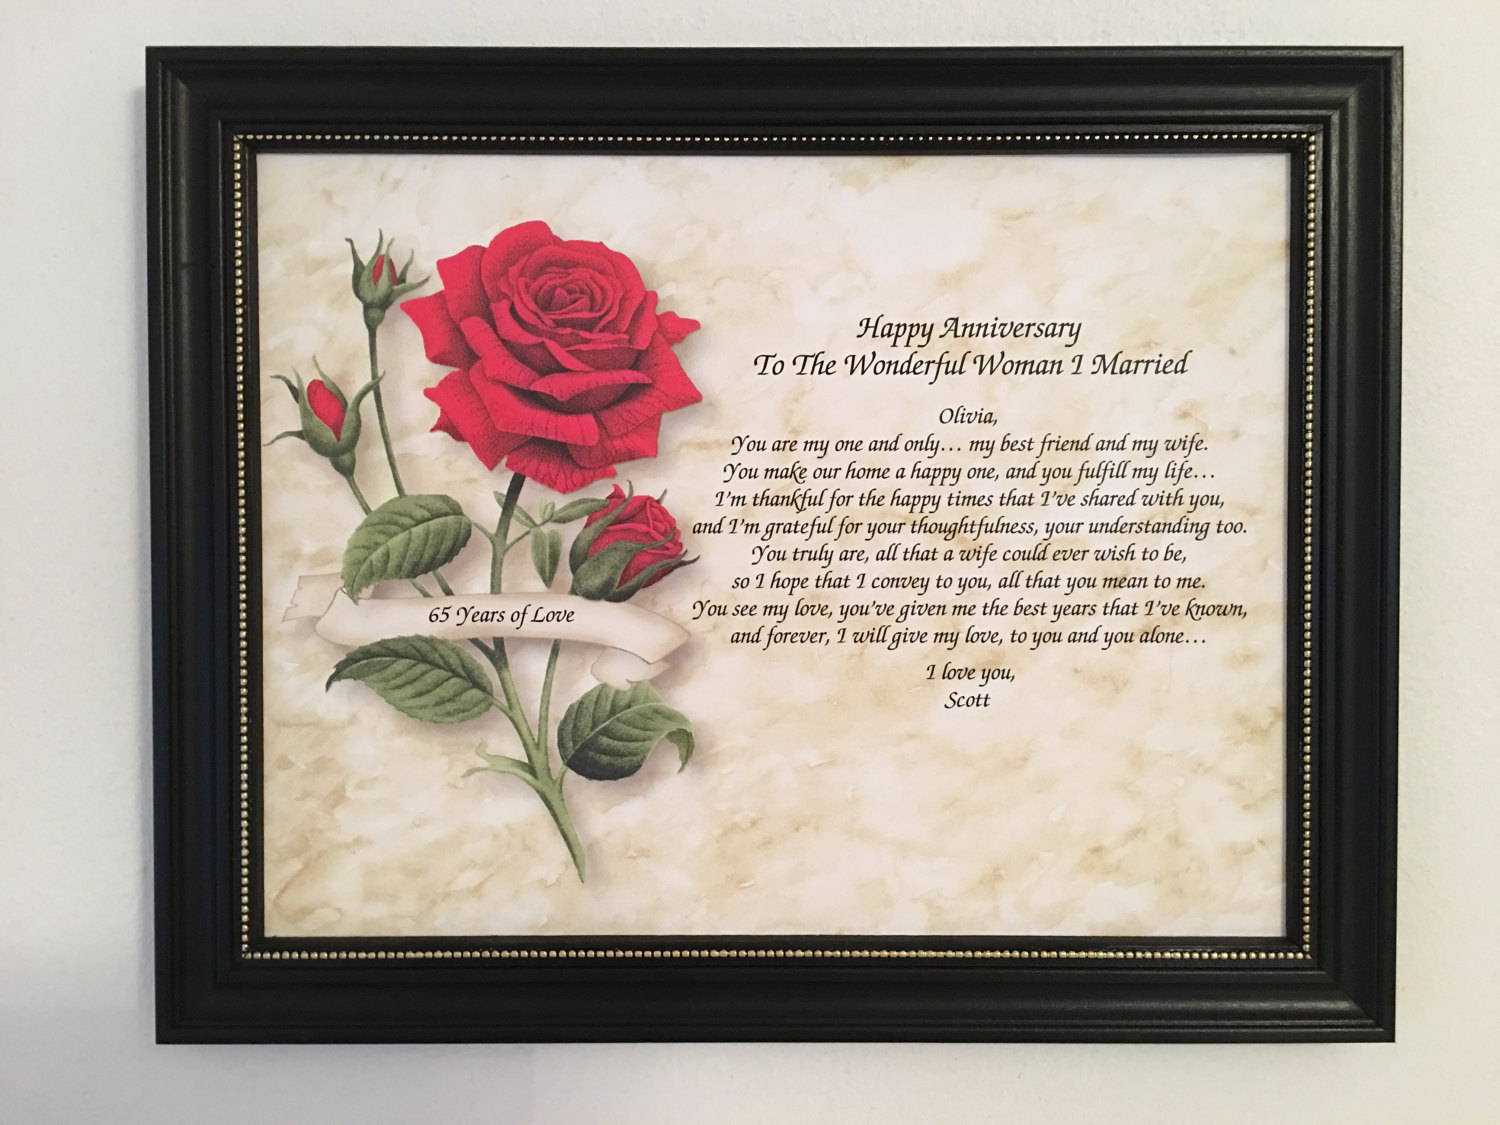 65th Wedding Anniversary Gift Ideas: 65th Anniversary Gift For Wife Love Poem Personalized